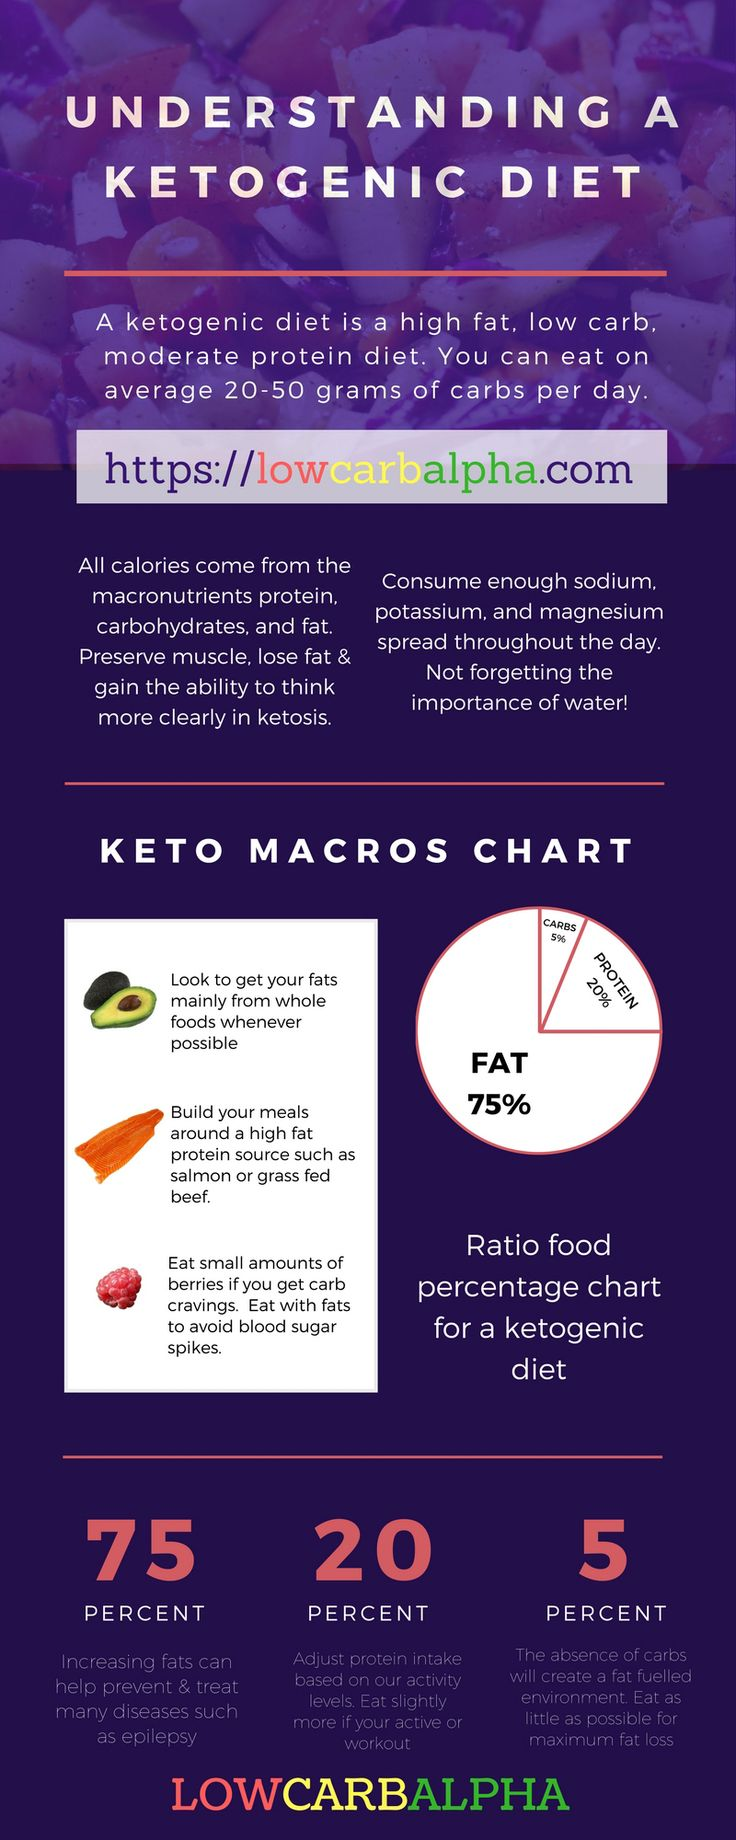 Understanding a Ketogenic Diet https://lowcarbalpha.com/increase-fat-burning-during-ketosis/ How to increase weight loss with keto. Keto is high in fats, low in carbs and moderate amounts of proteins. Look to eat around 20-50 grams of carbs per day #ketog